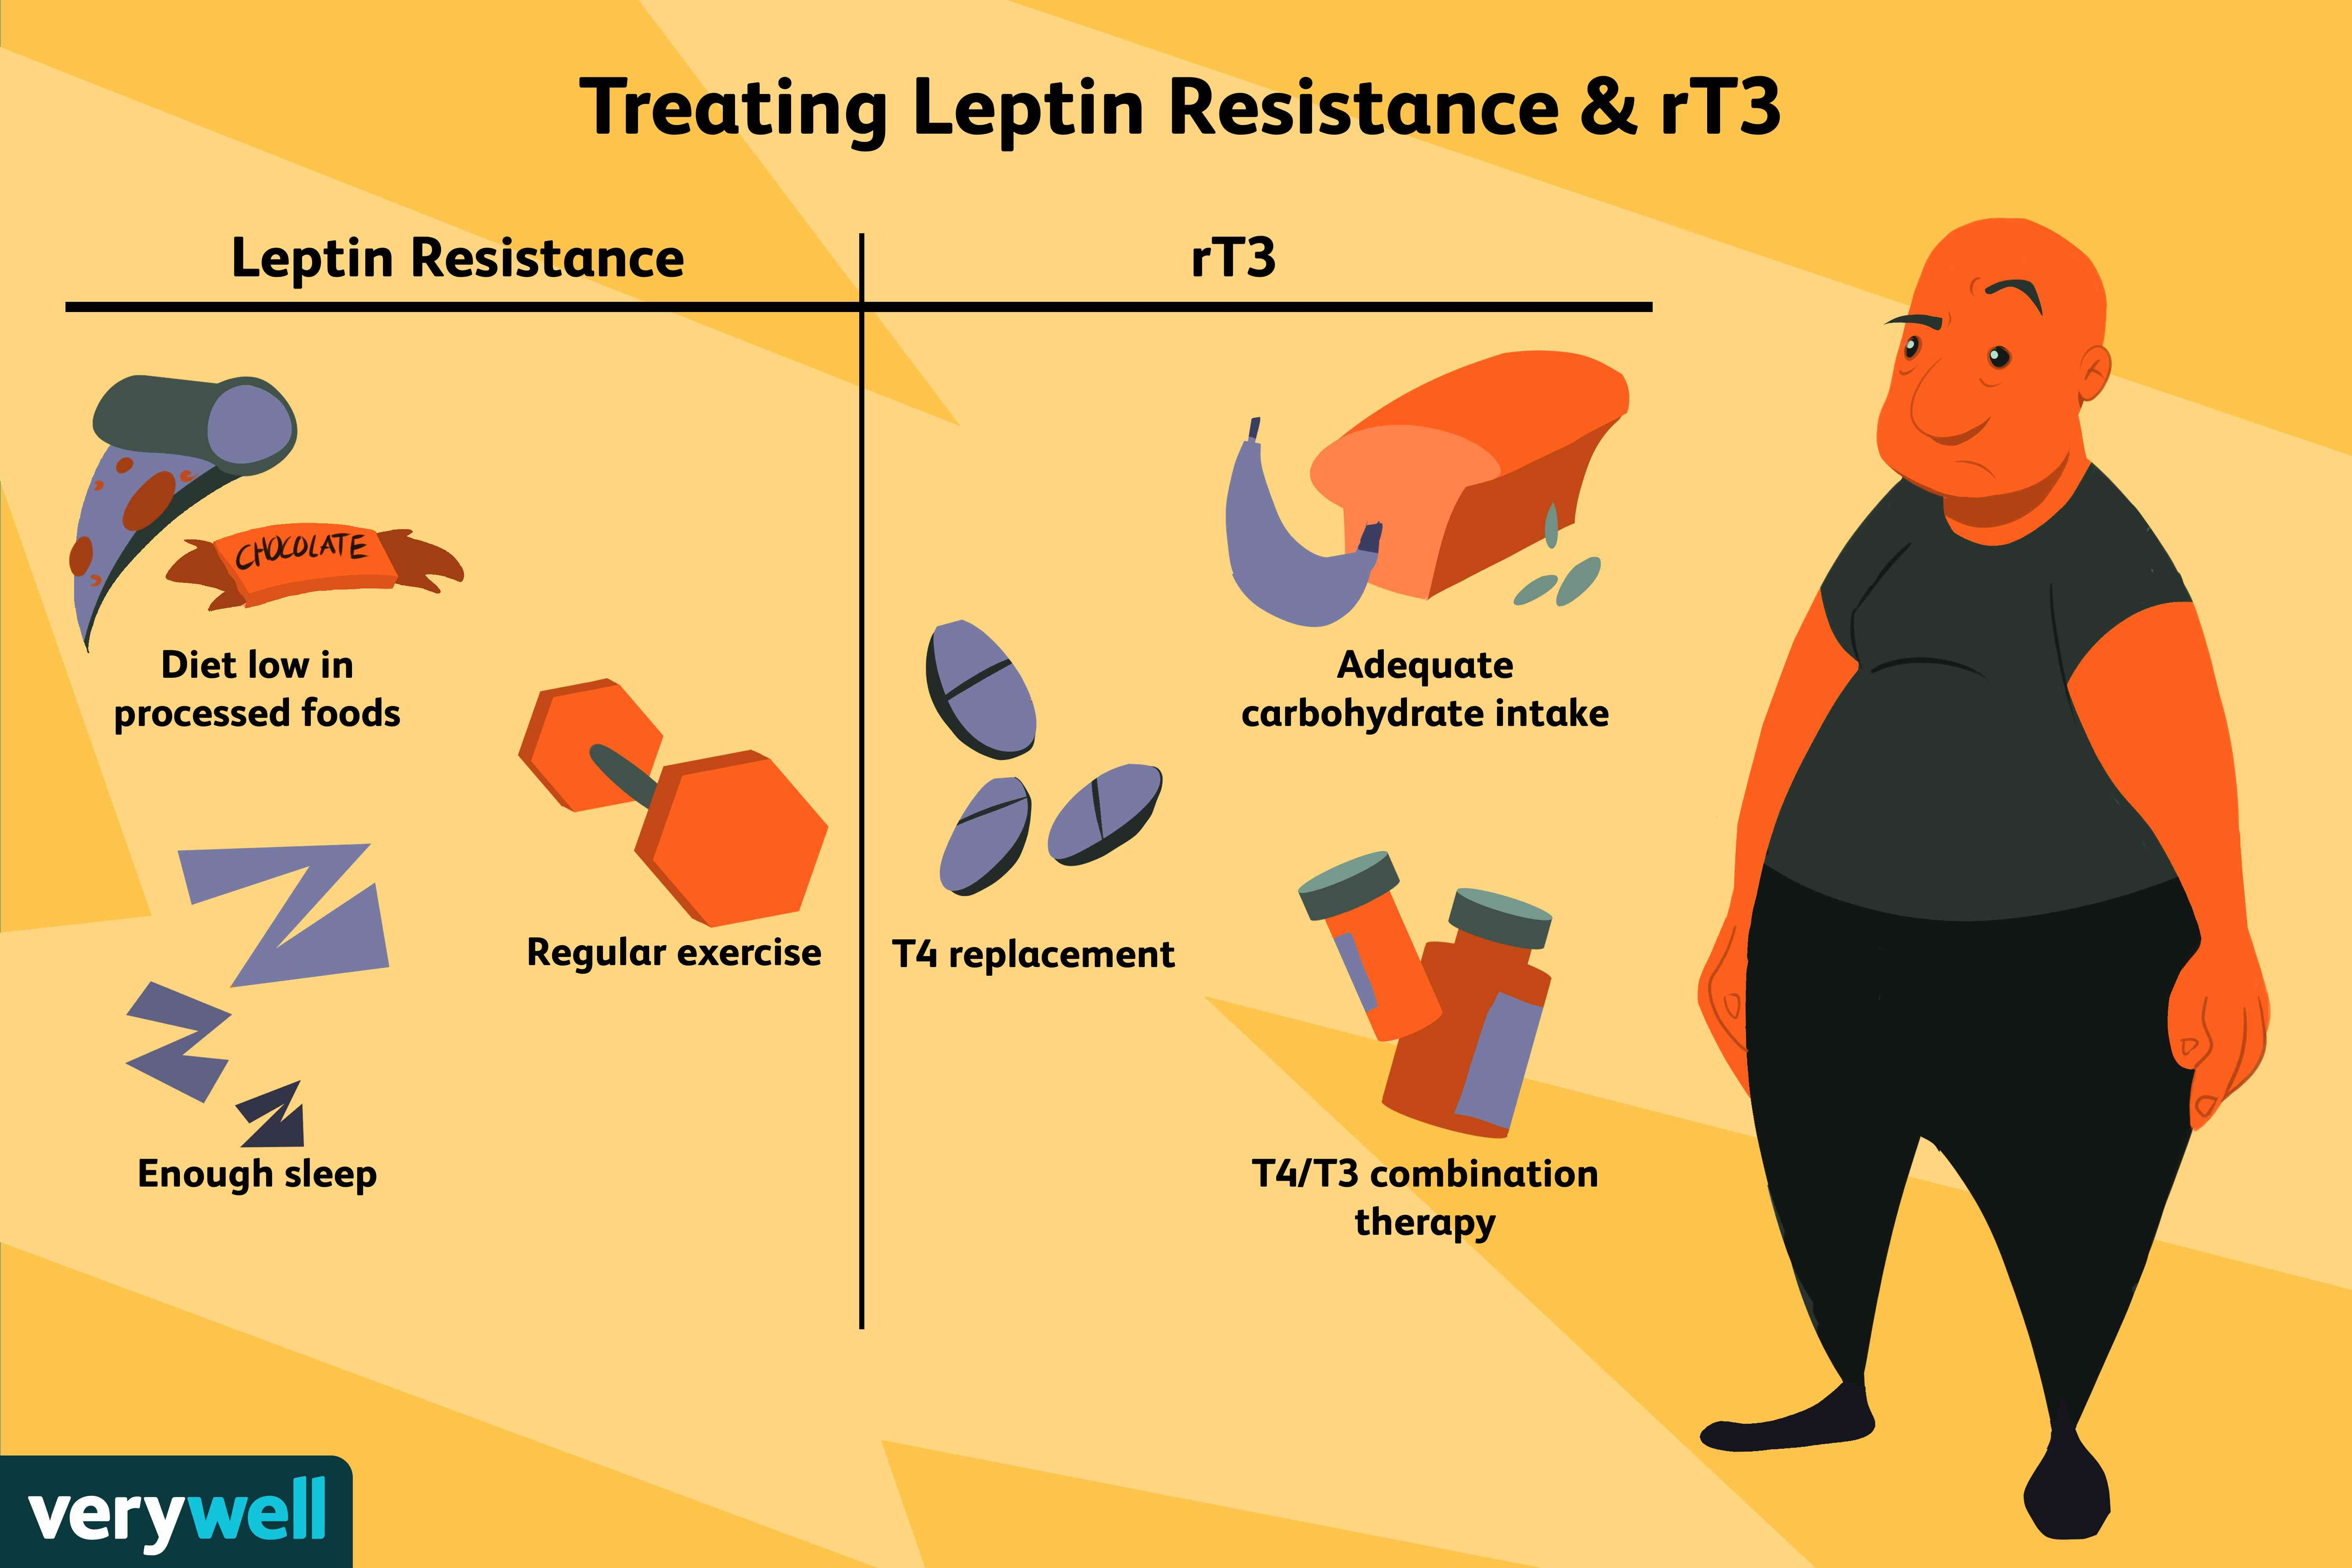 treating leptin resistance and rT3